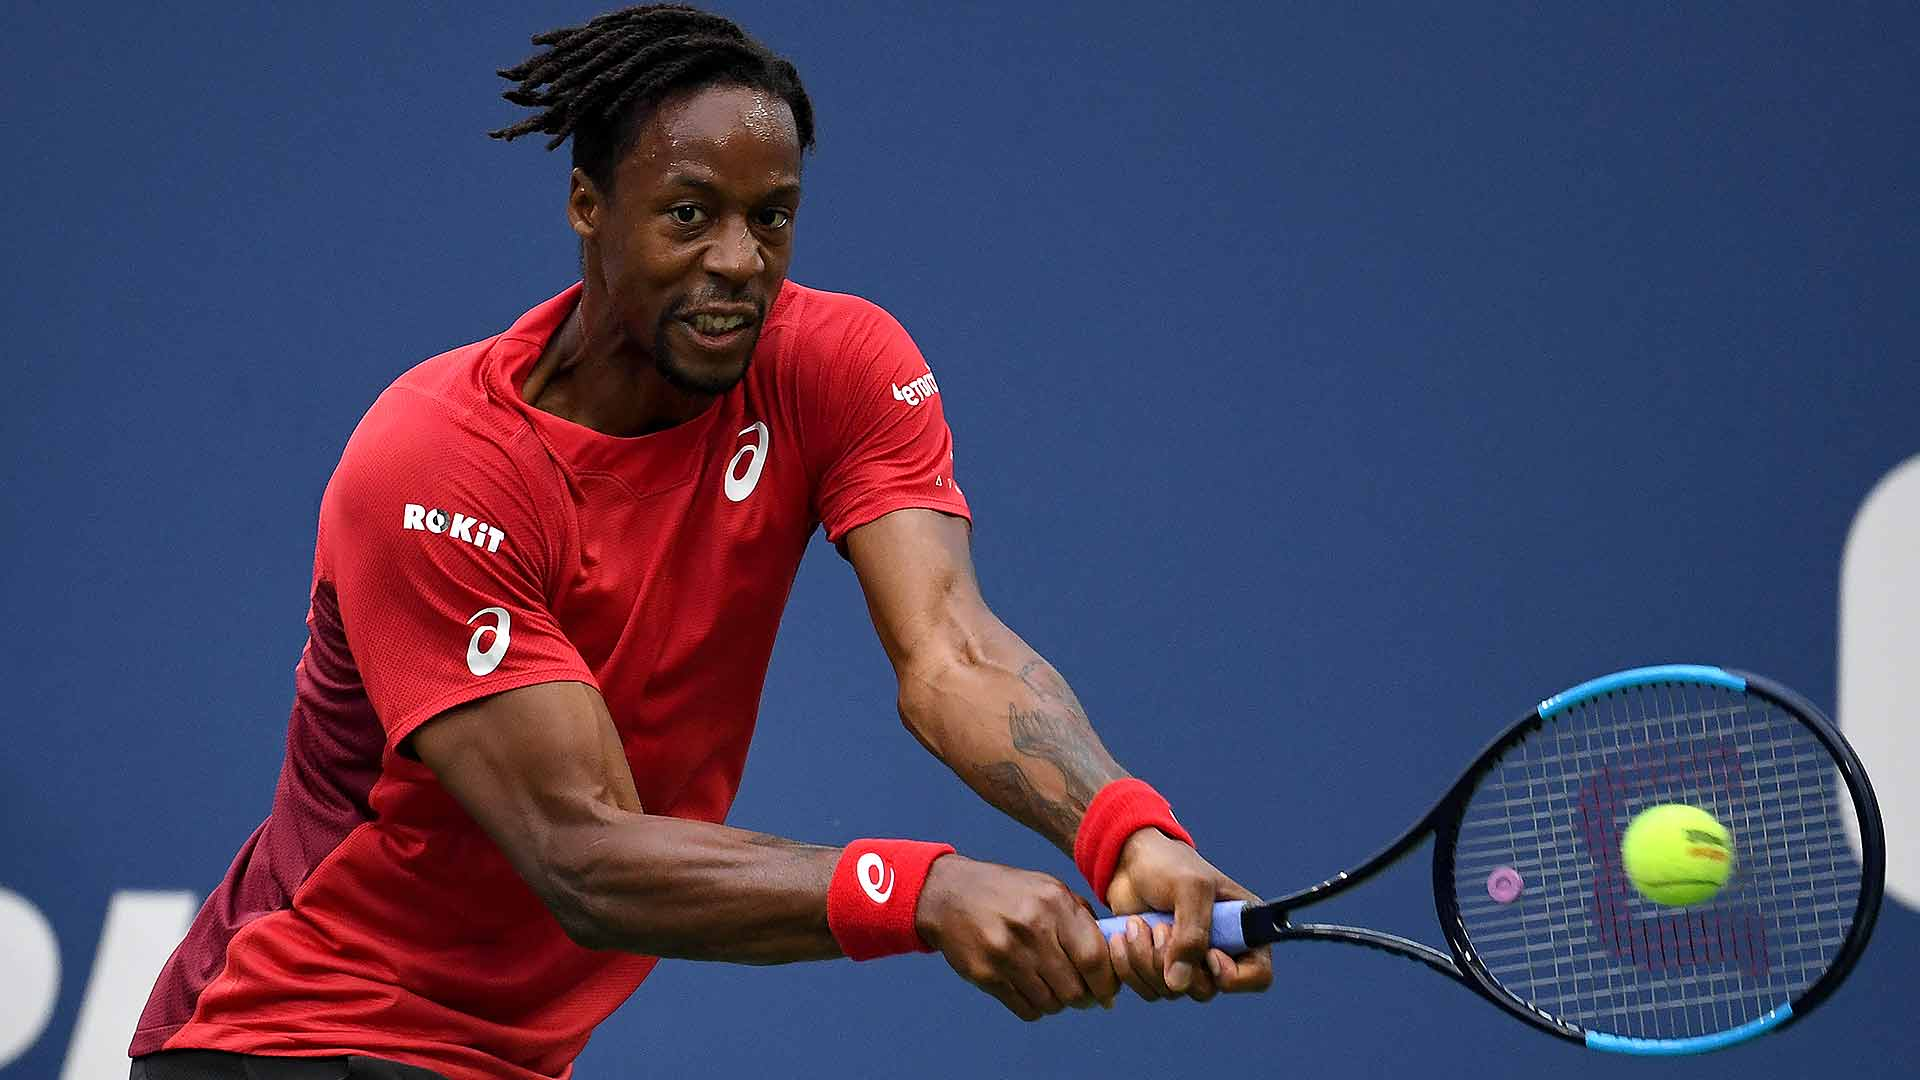 Gael Monfils is looking to reach his third Grand Slam semi-final this week at the US Open.